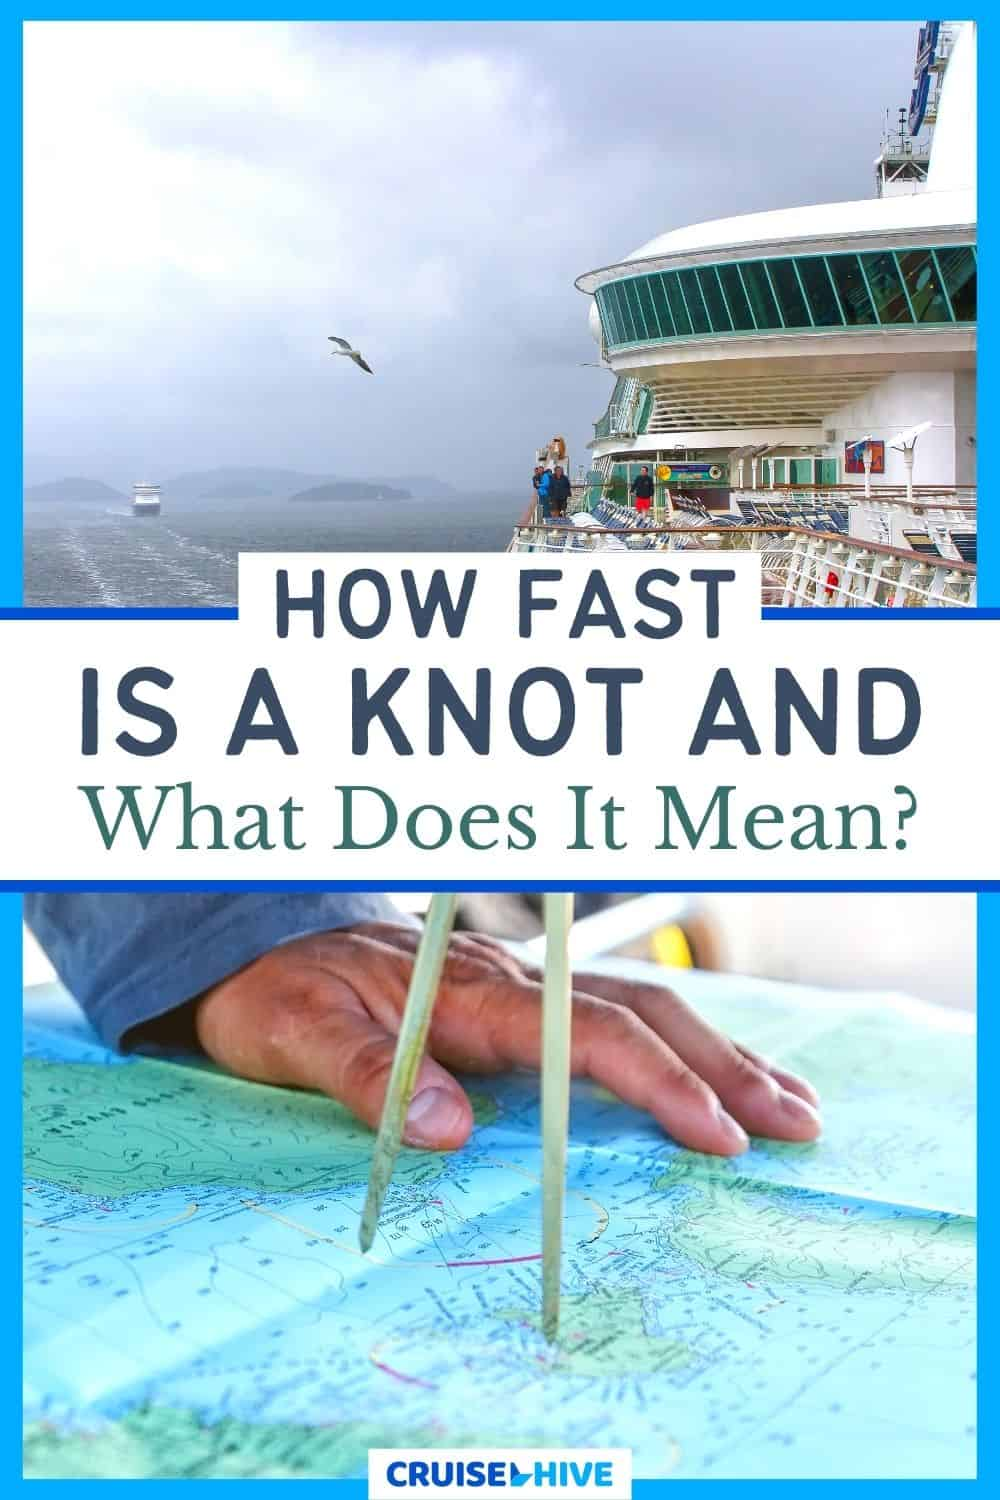 How fast is a knot